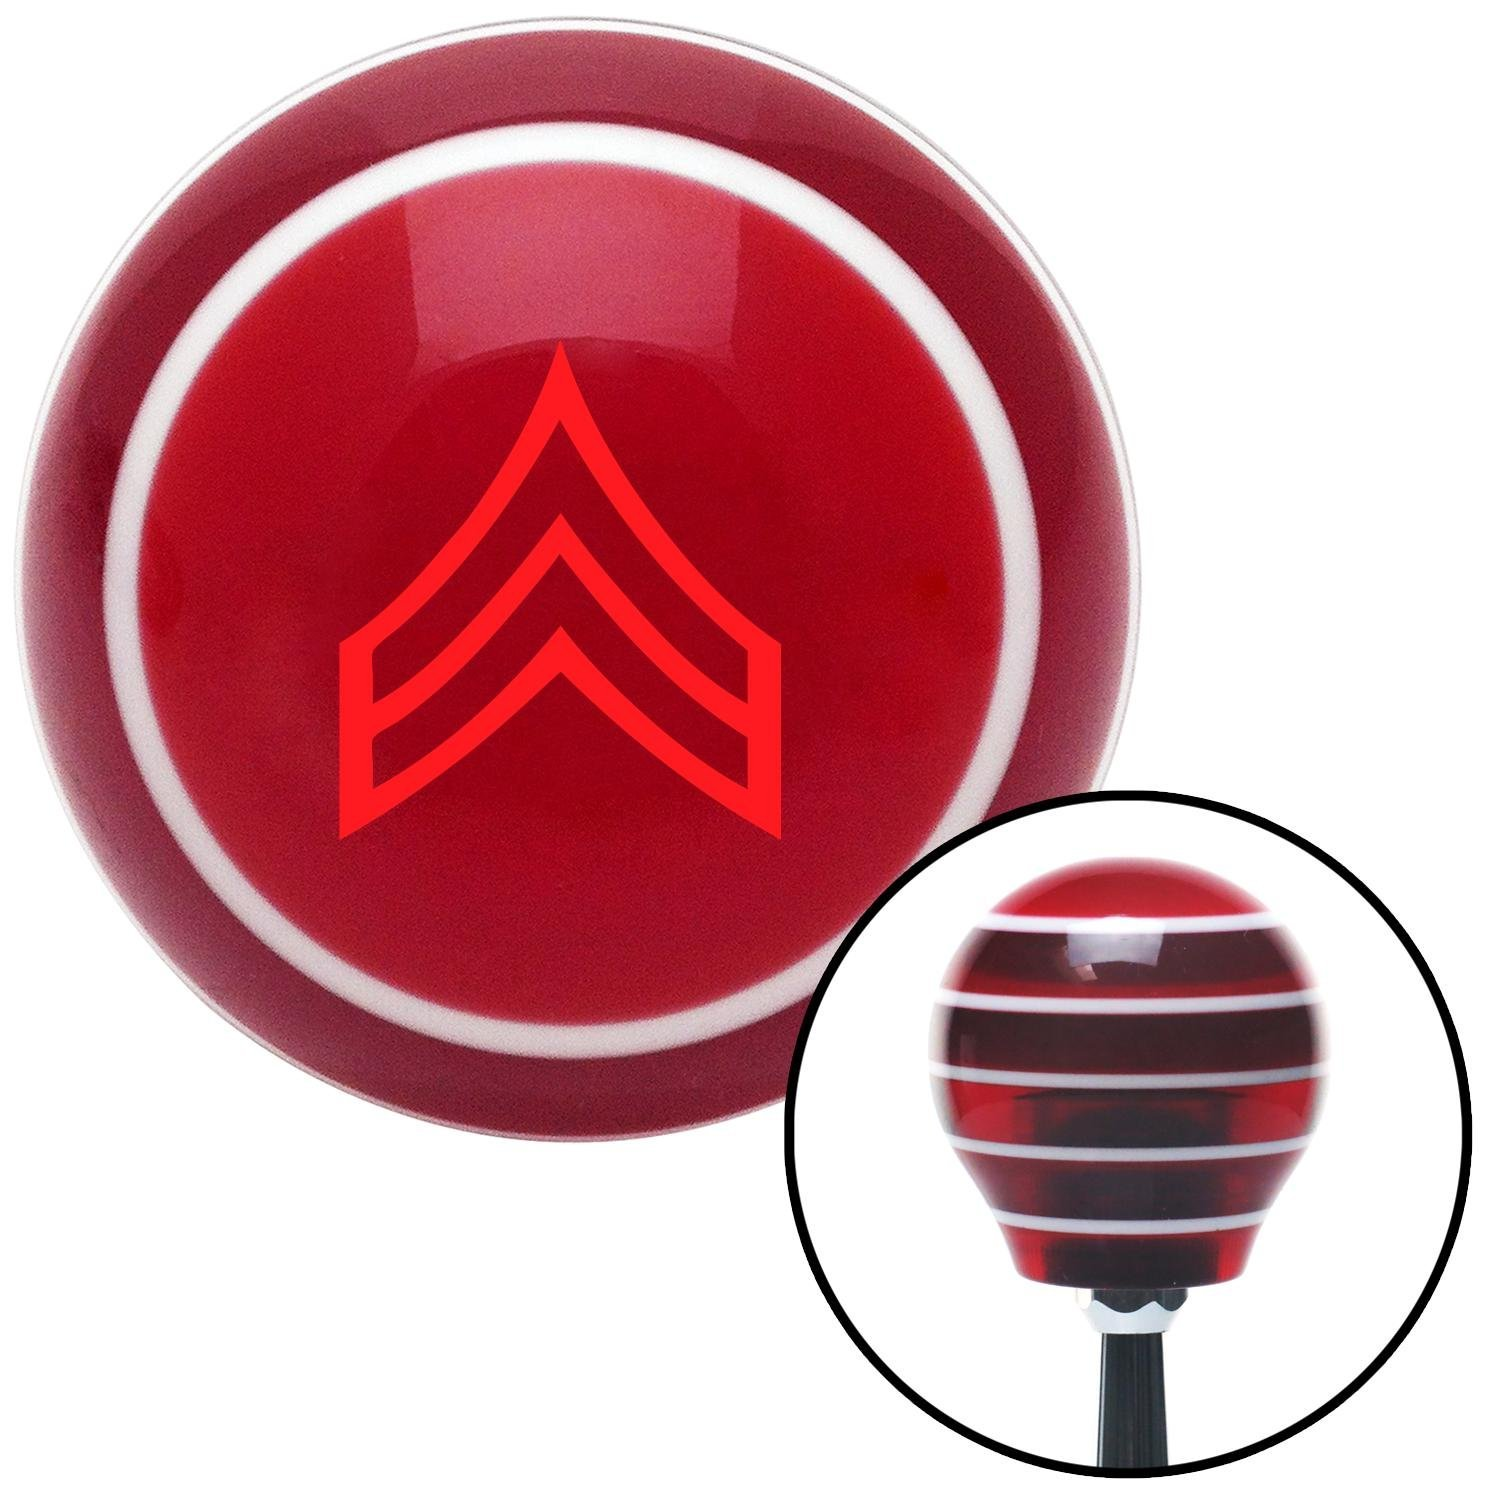 American Shifter 115341 Red Stripe Shift Knob with M16 x 1.5 Insert Red Corporal